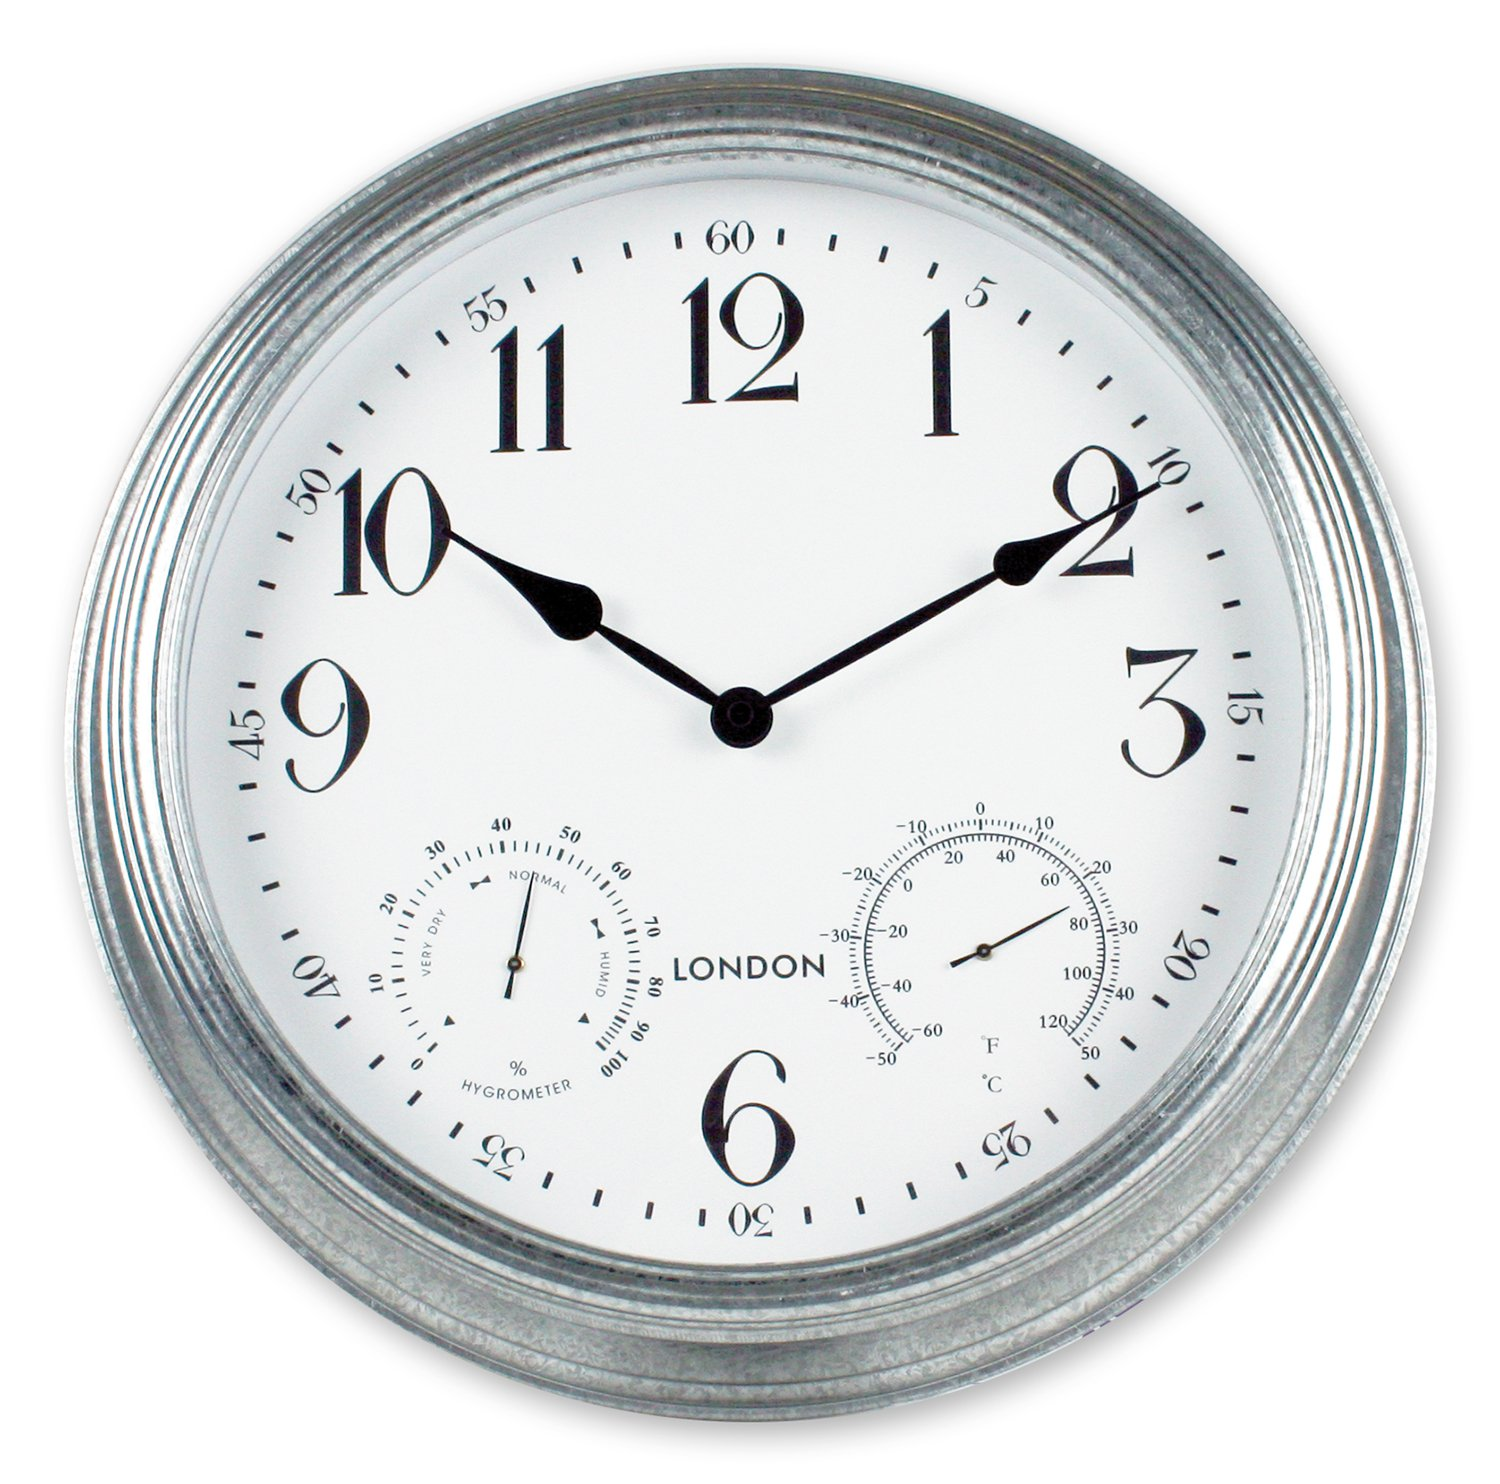 Poolmaster 52610 1634; London Wall Clock